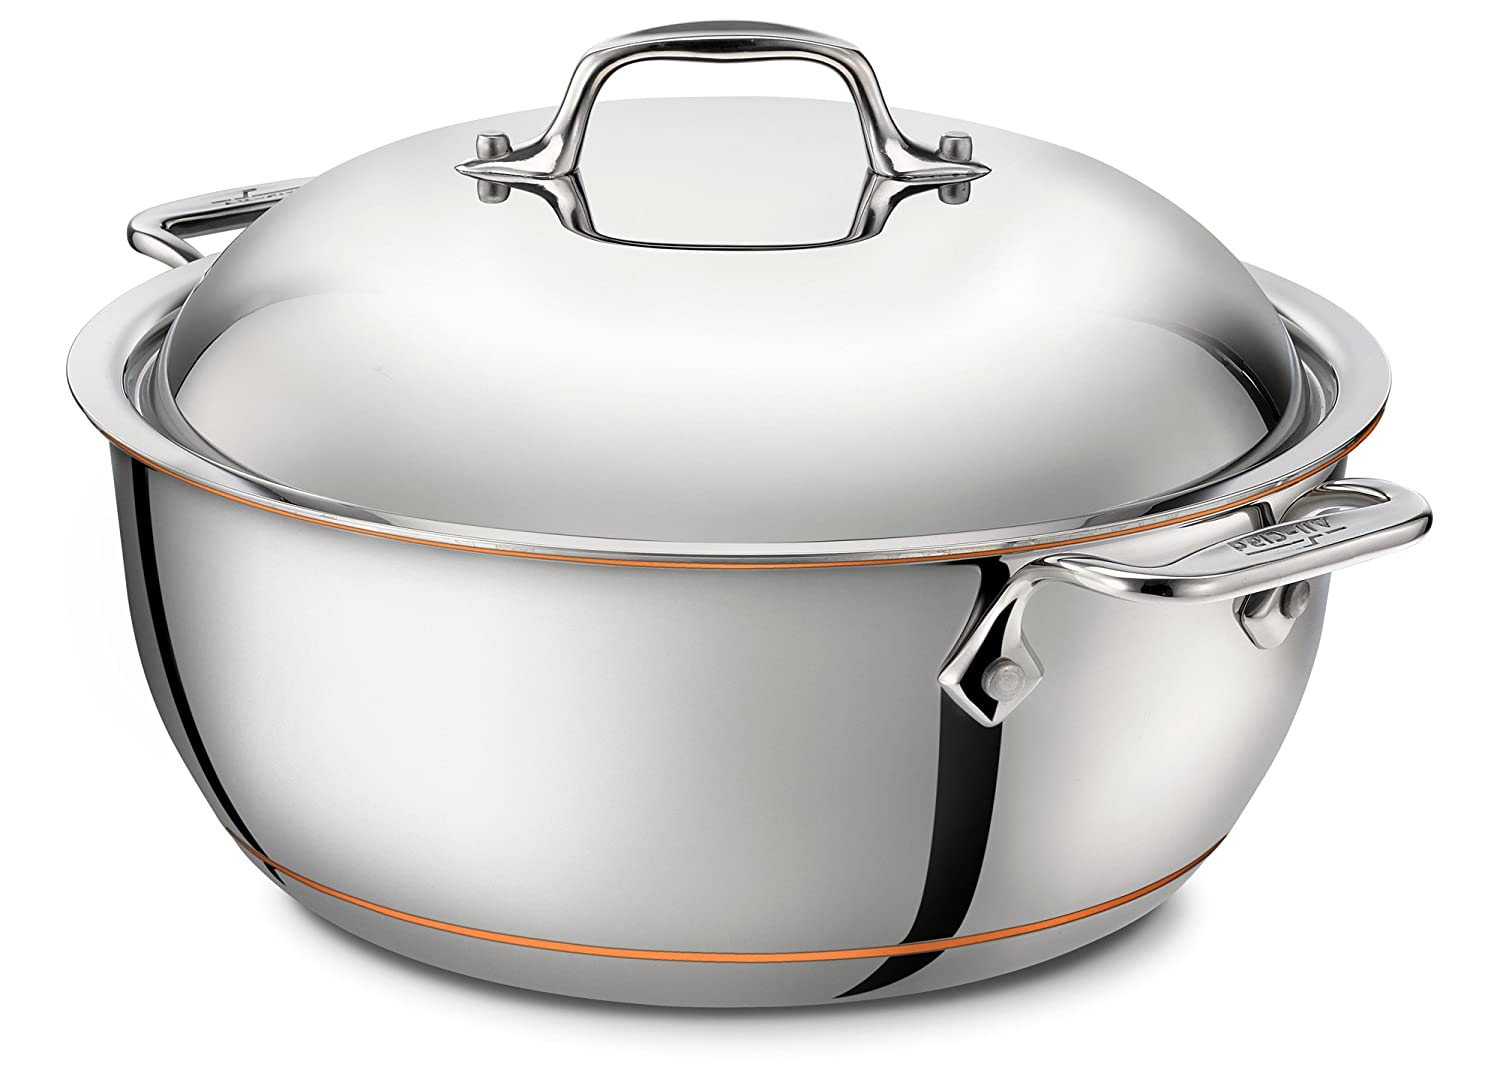 amazoncom allclad ss copper core 5ply bonded dishwasher safe dutch oven with lid cookware 55quart silver kitchen u0026 dining